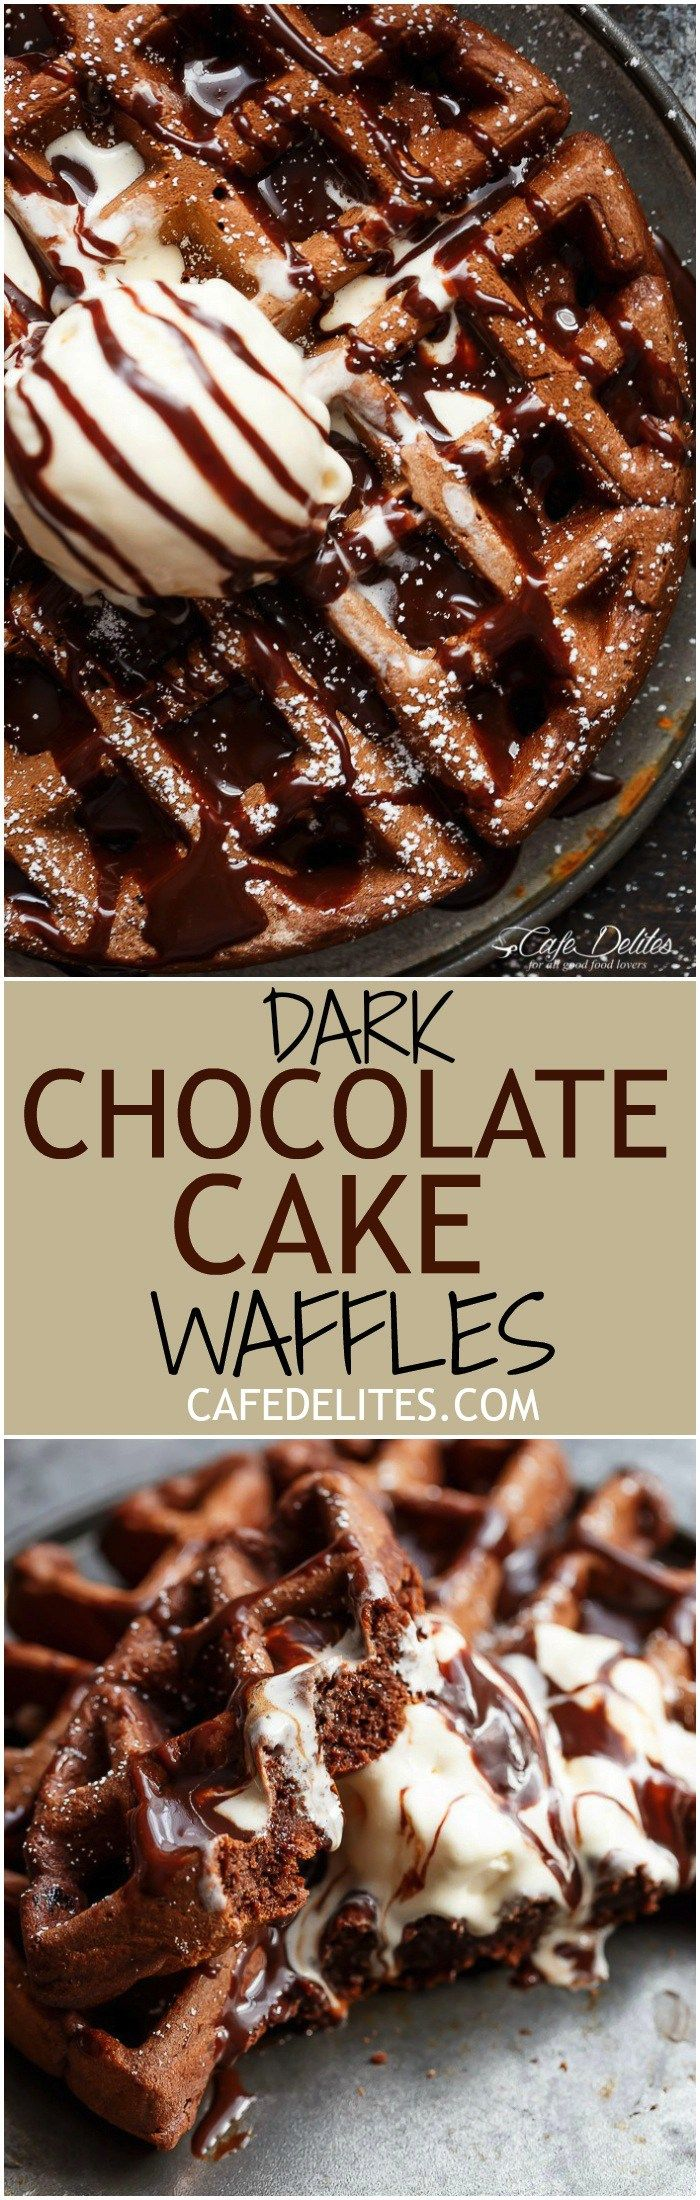 Dark Chocolate Cake Waffles are rich and decadent, chocolate cake transformed into waffles! Perfect for breakfast or dessert with no complicated steps! | http://cafedelites.com